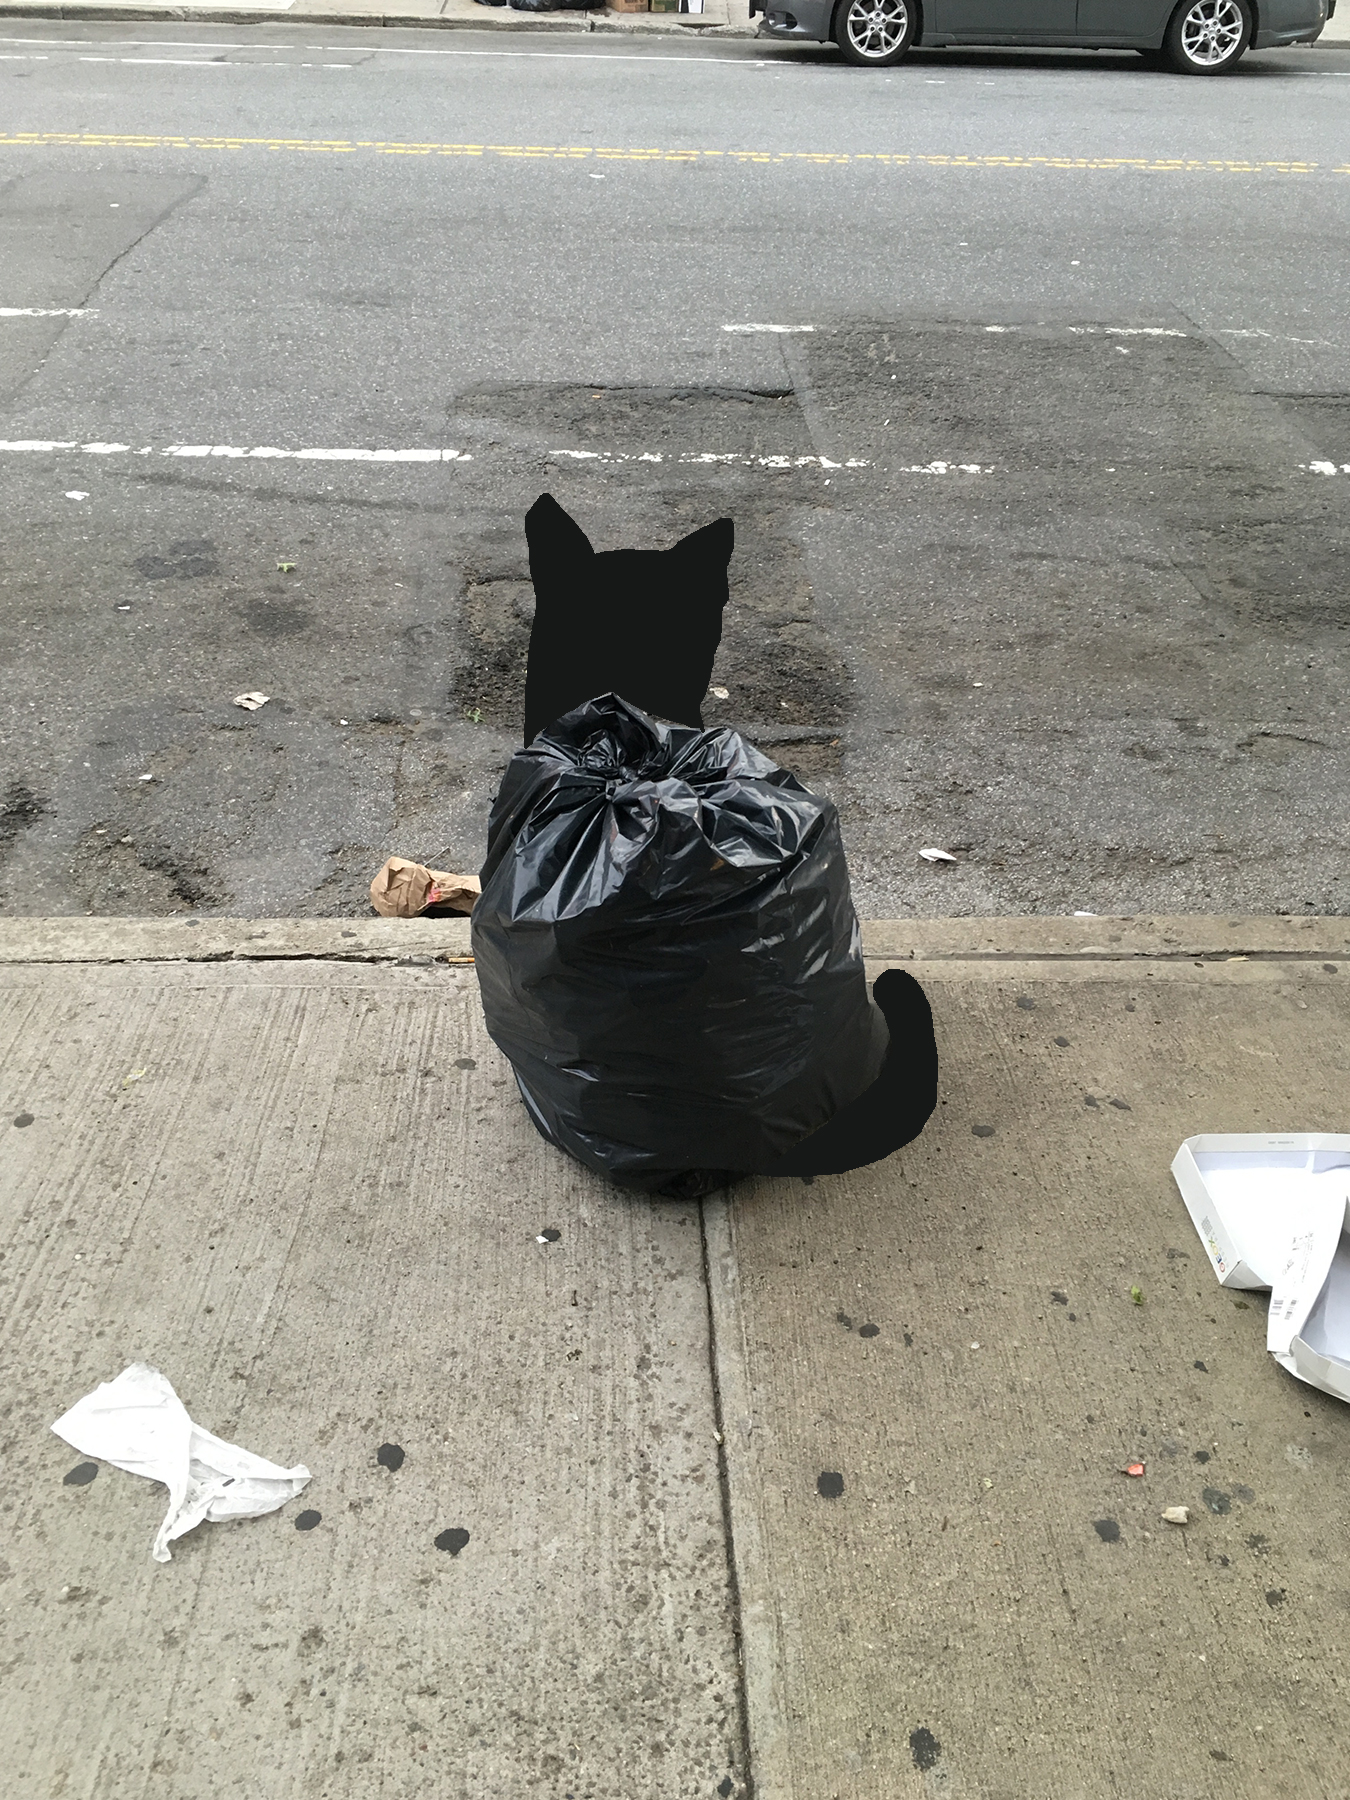 A photo of a trash bag, except now the bag is a cat